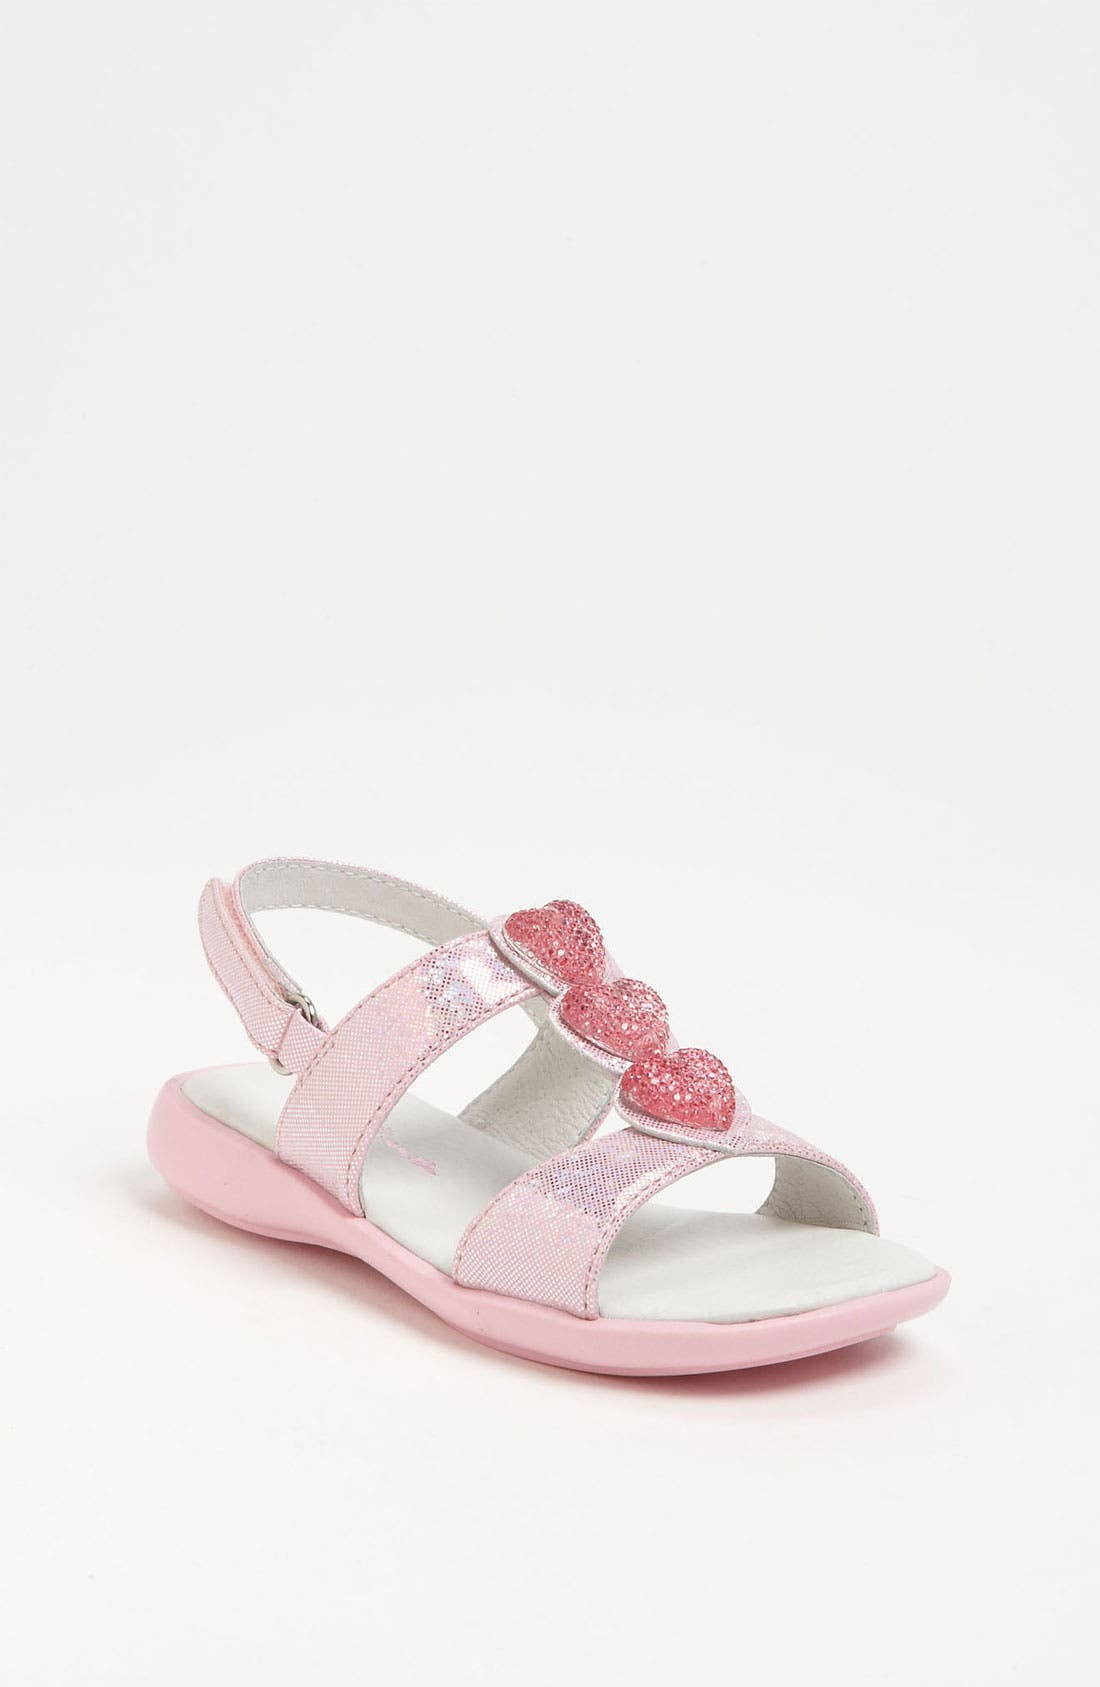 Alternate Image 1 Selected - Nina 'Clarina' Heart Sandal (Walker & Toddler)